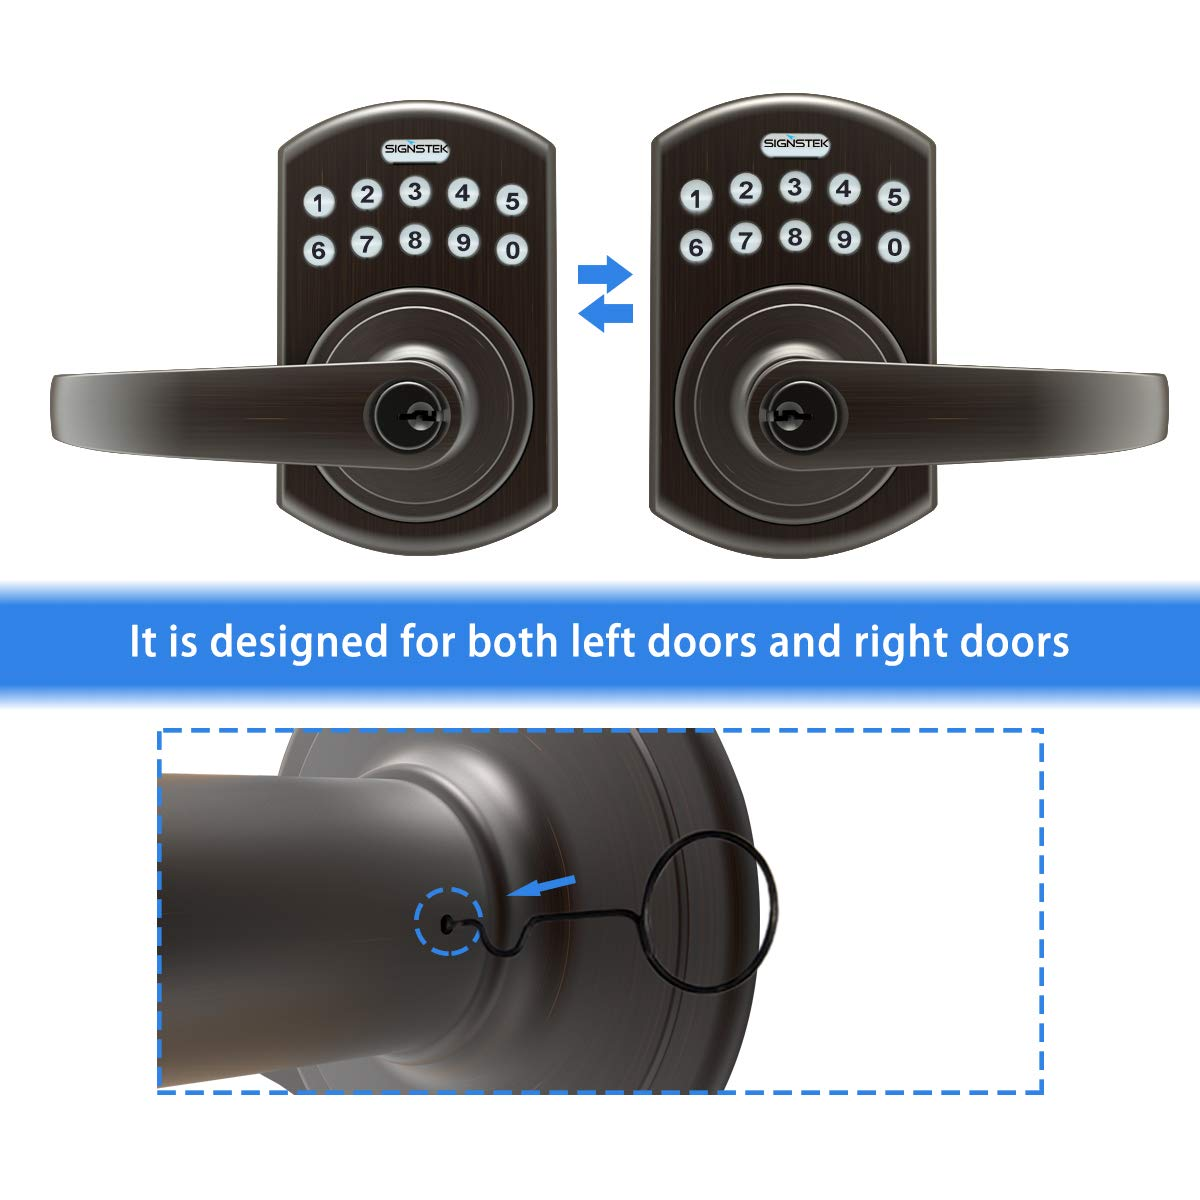 Signstek Keypad Entry Lever Door Lock with LED Backlit Keypad Password/Key Accessibles, Oil Rubbed Bronze by Signstek (Image #2)